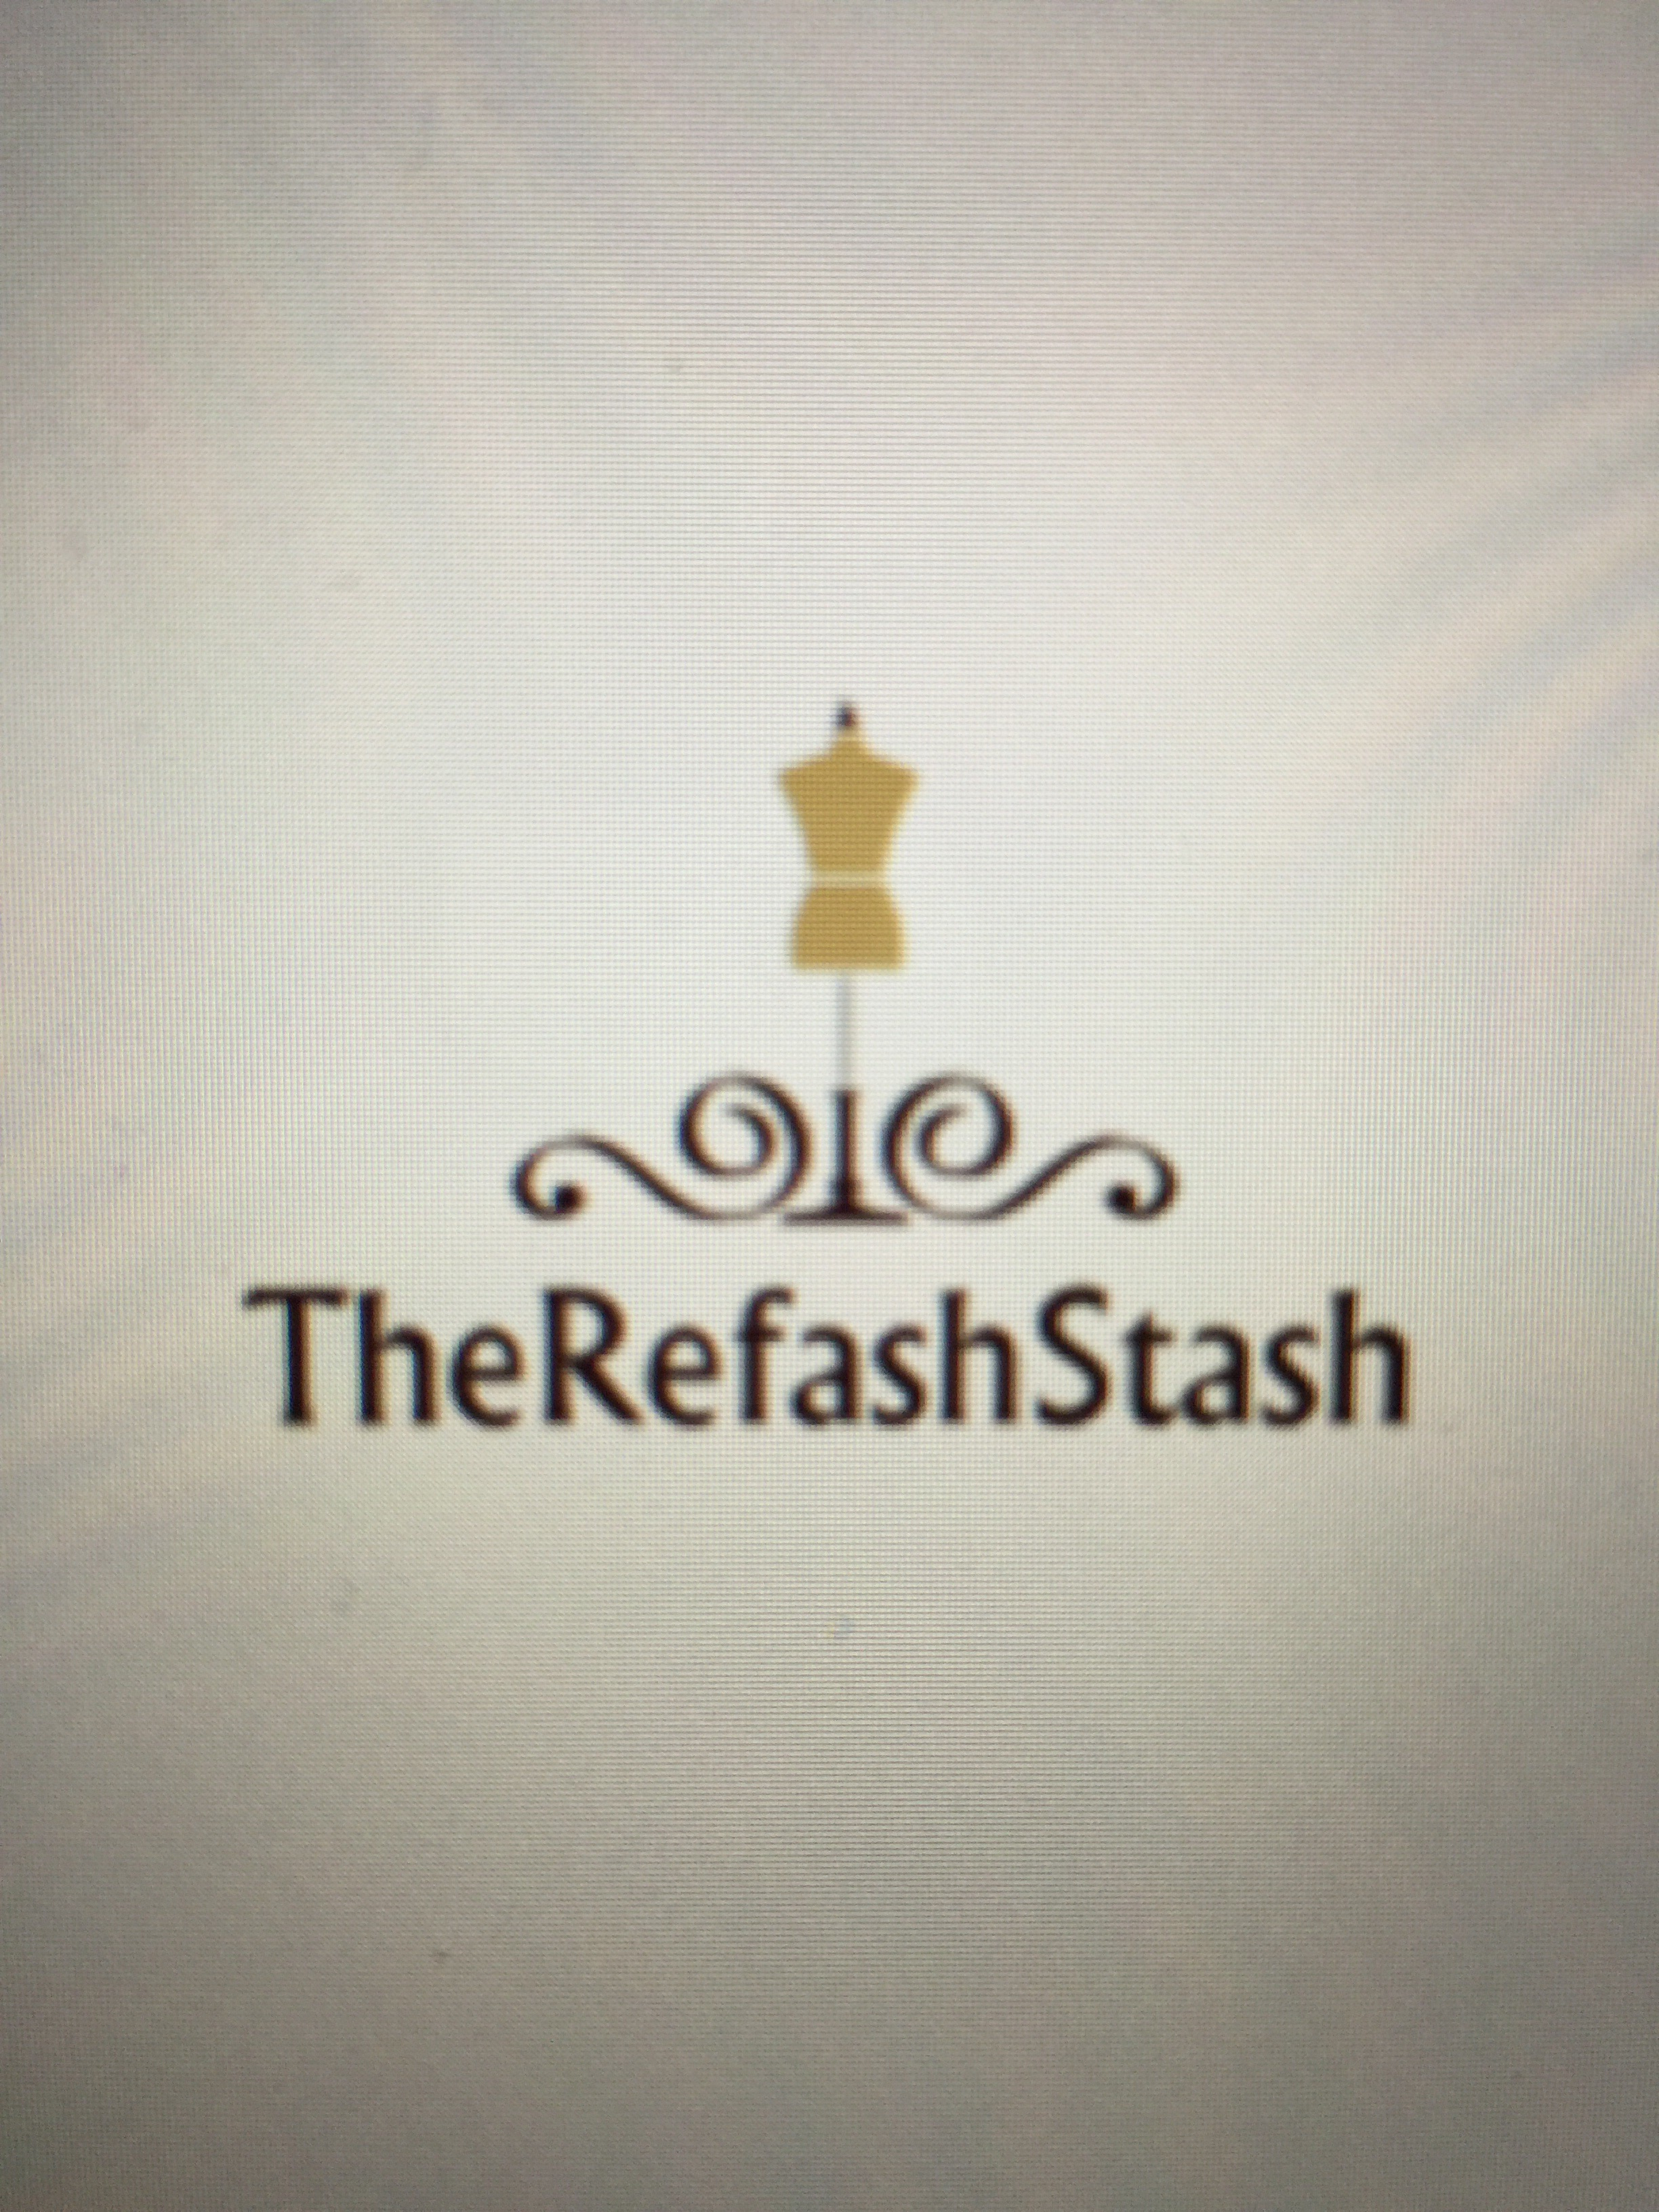 TheRefashStash